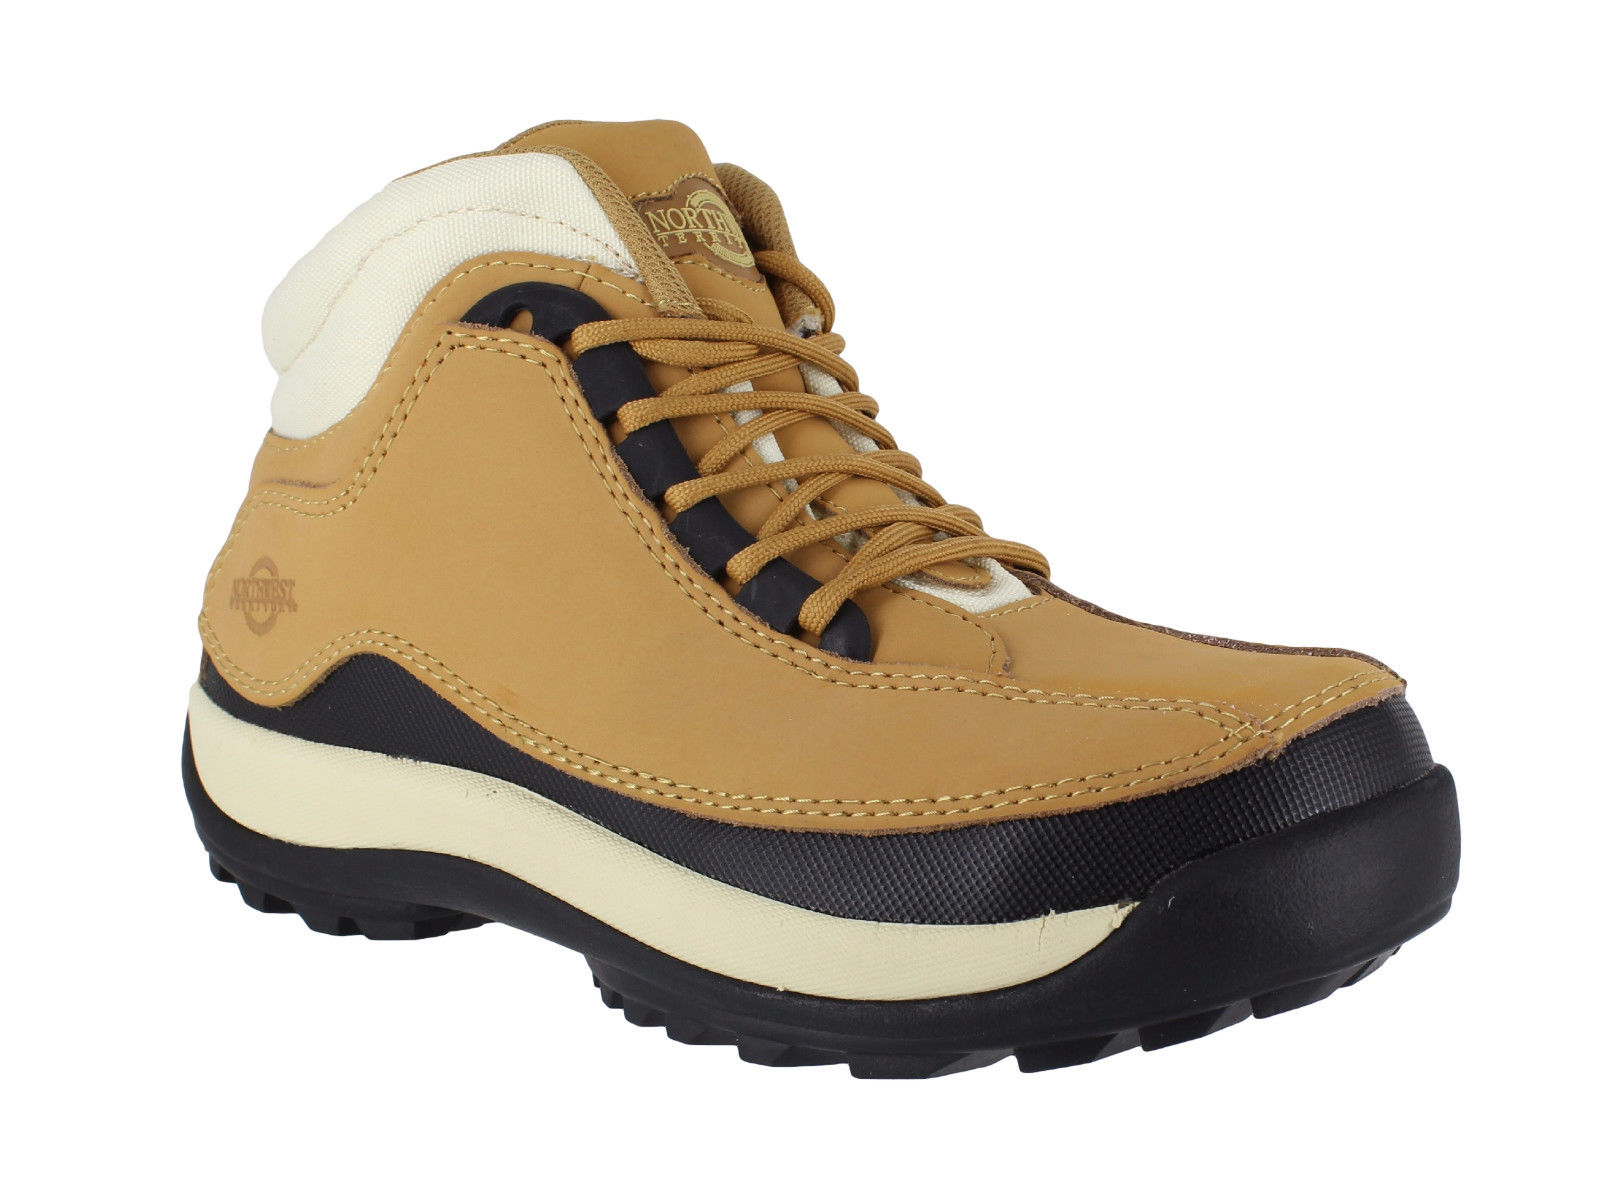 Womens Safety Steel Cap Shoes